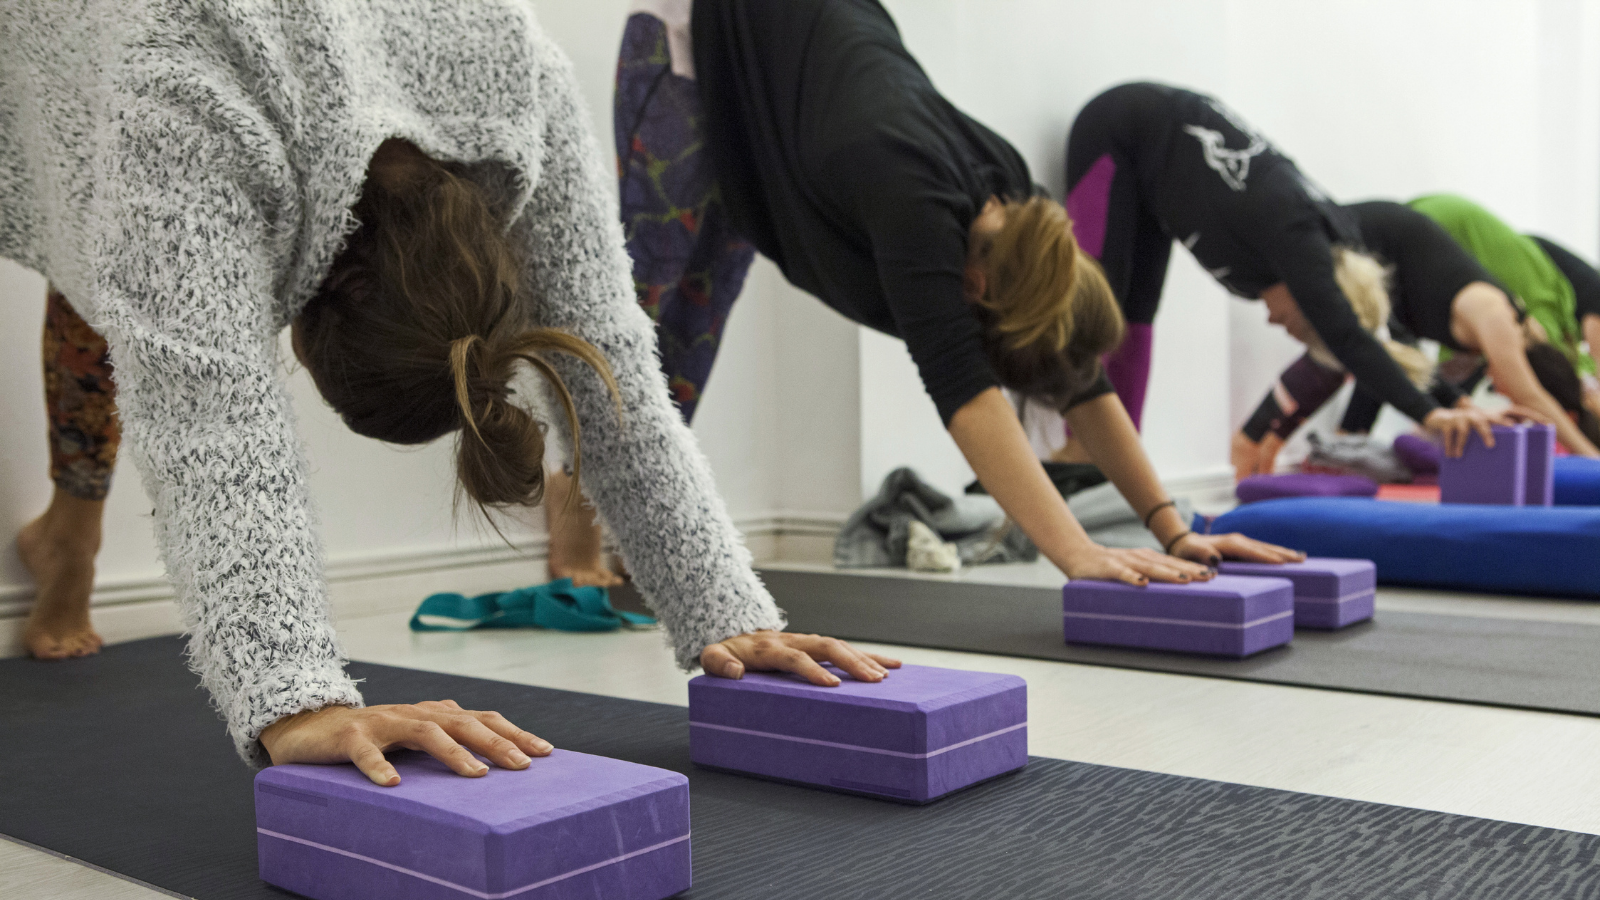 How to practice and teach yoga with curiosity and creativity in a mixed level class with modified Downward Facing Dog pose